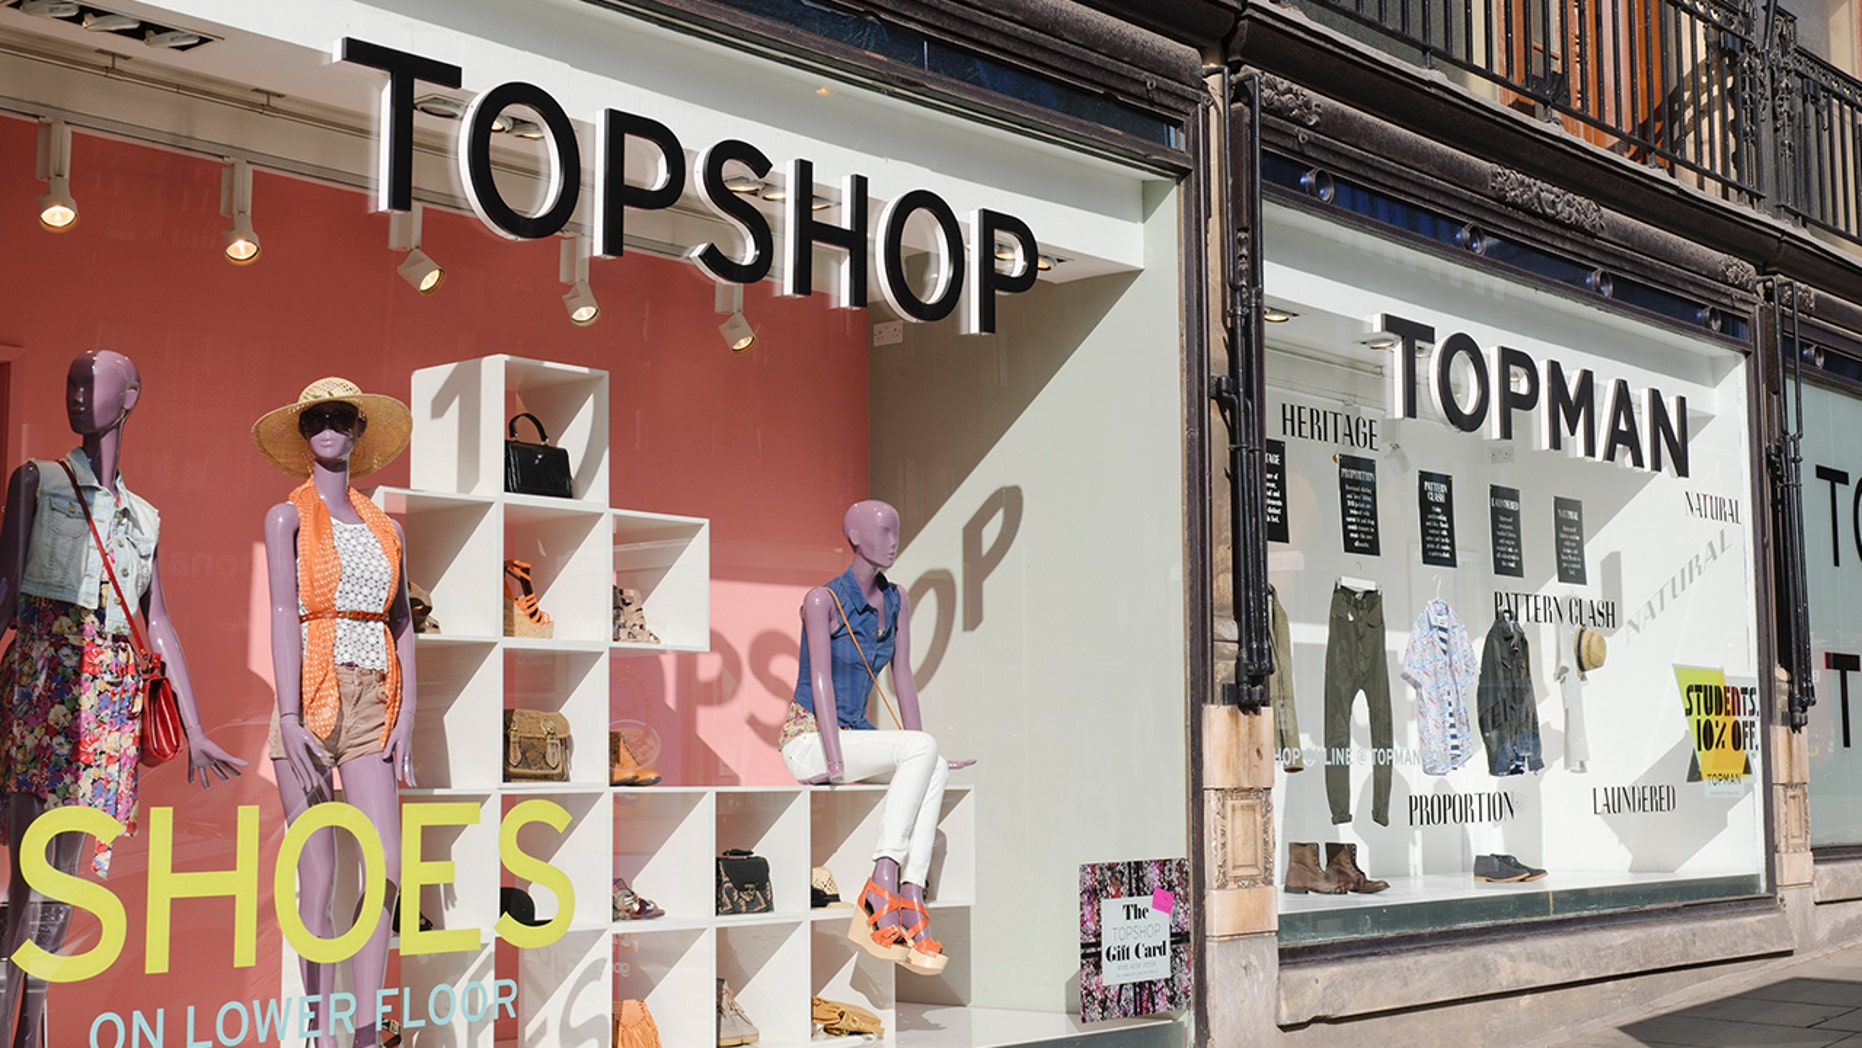 """Topshop's new """"suspender jeans"""" have sparked some strong opinions on Twitter."""